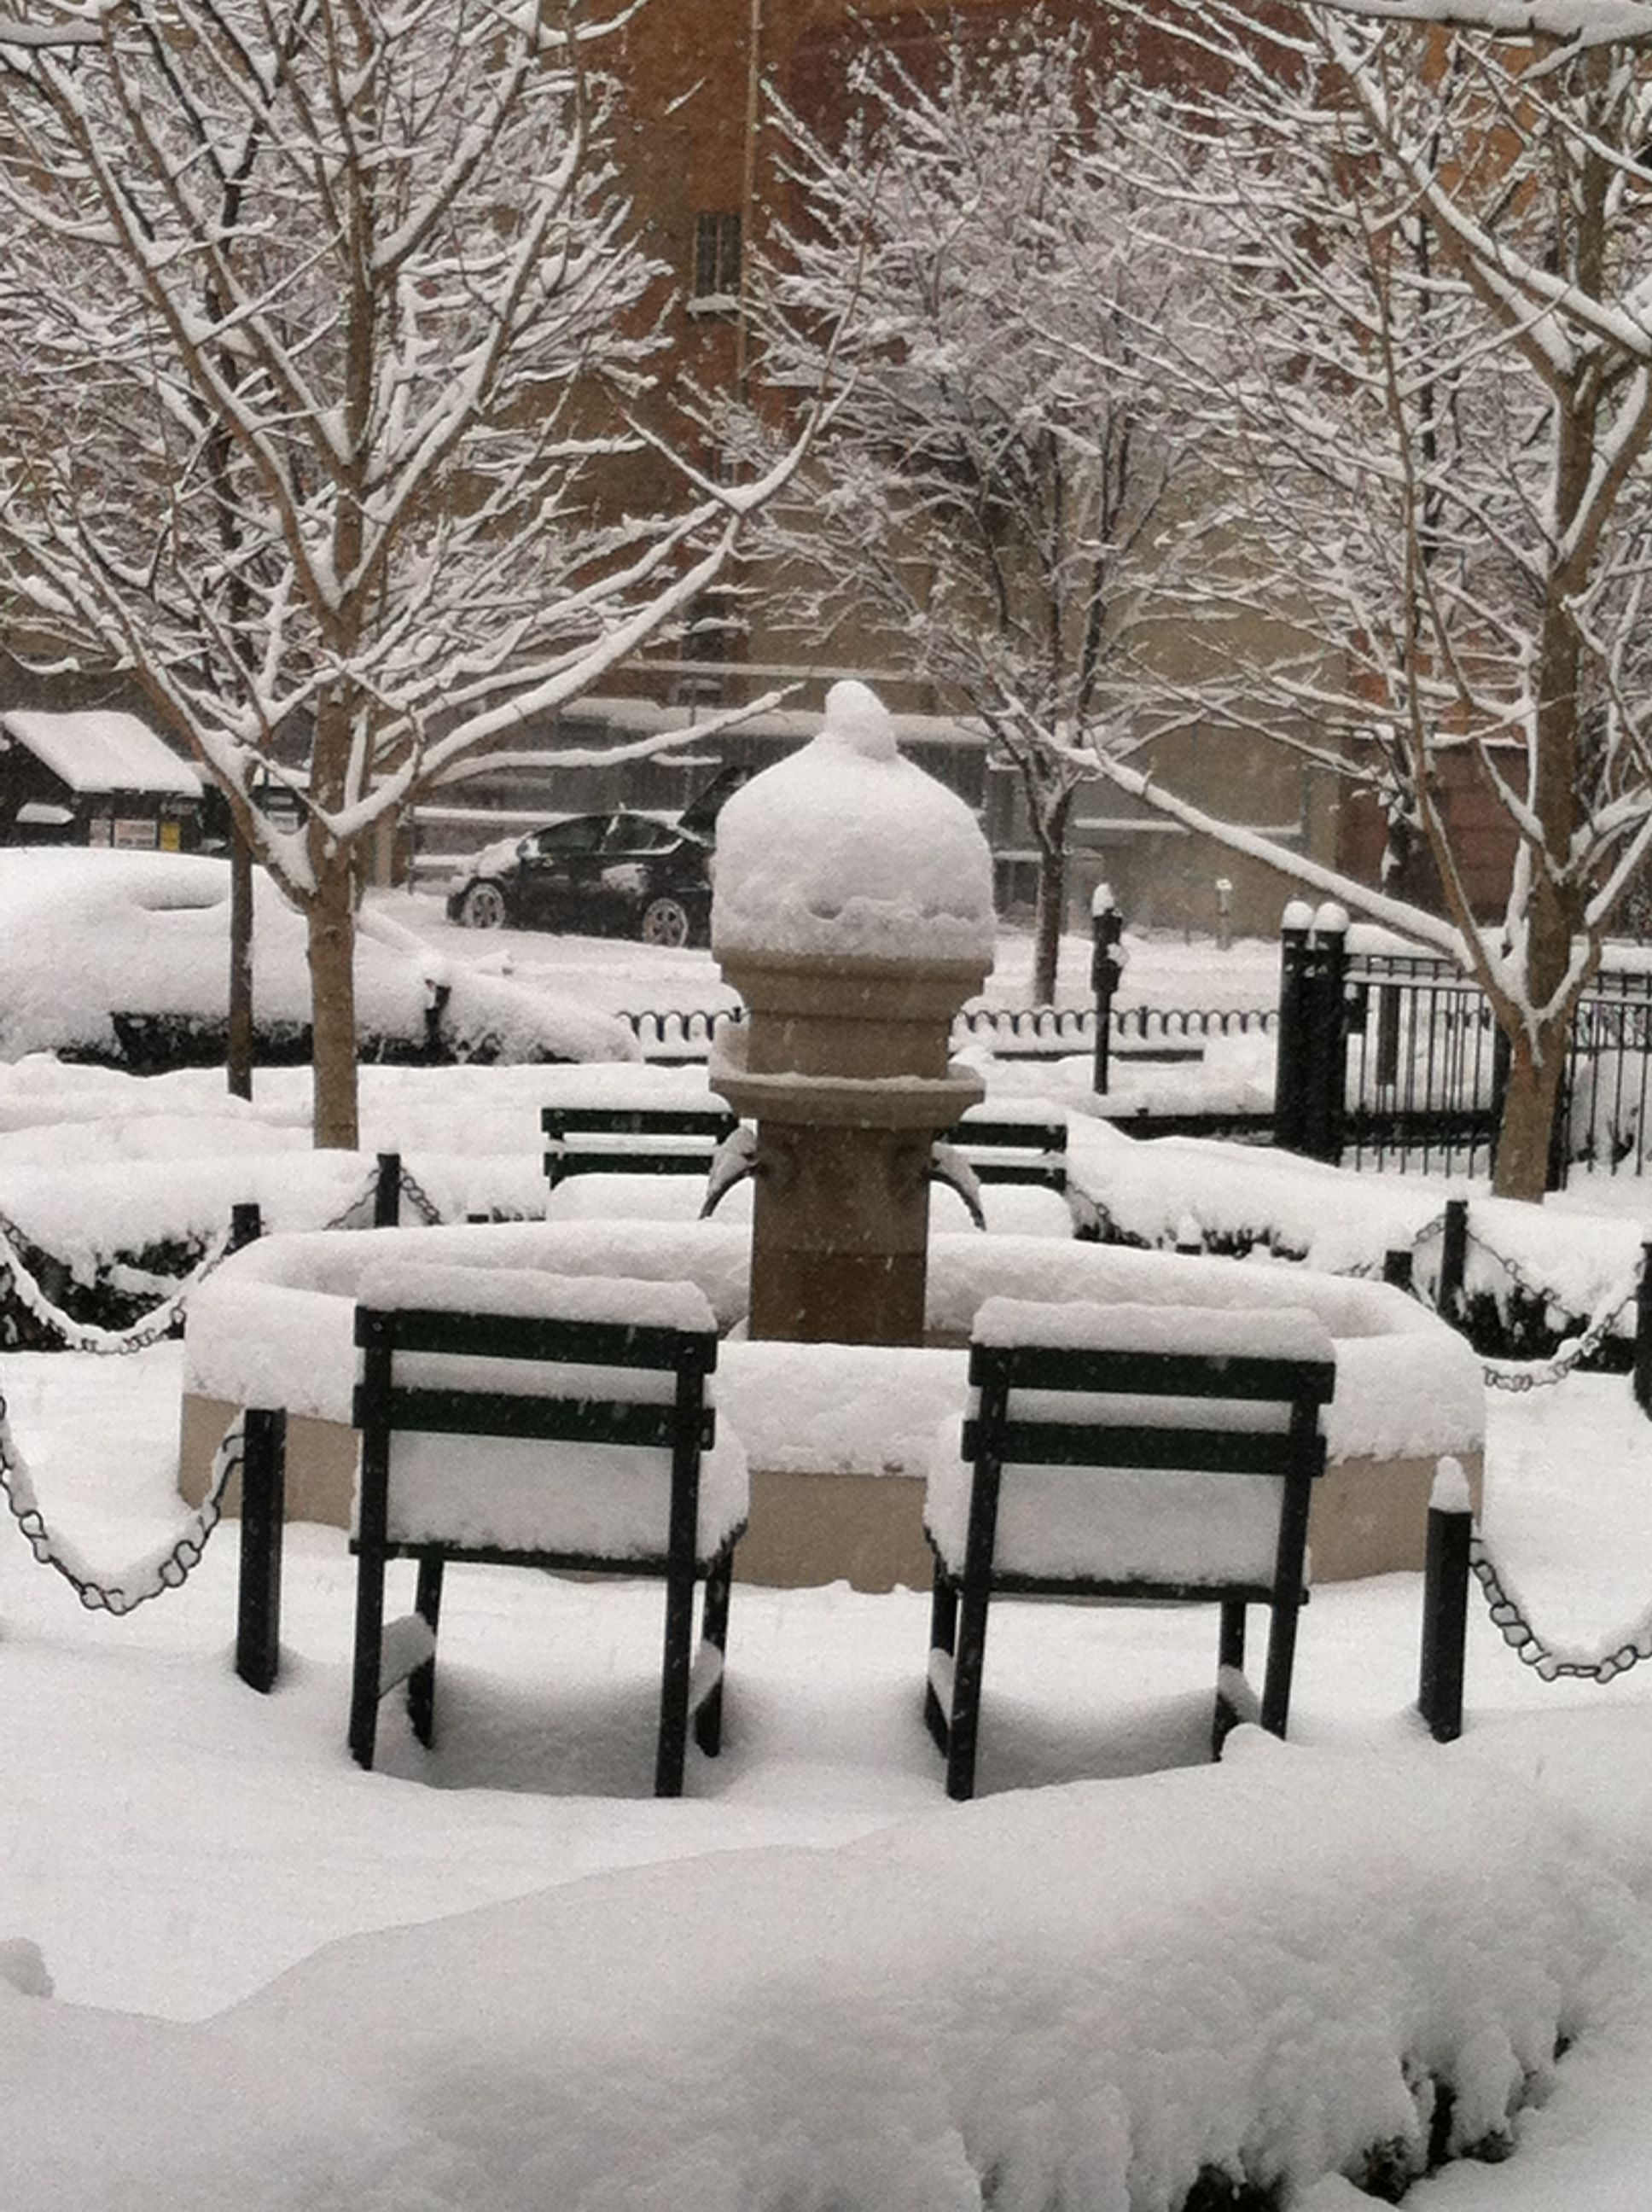 The courtyard at the park building after a snowfall